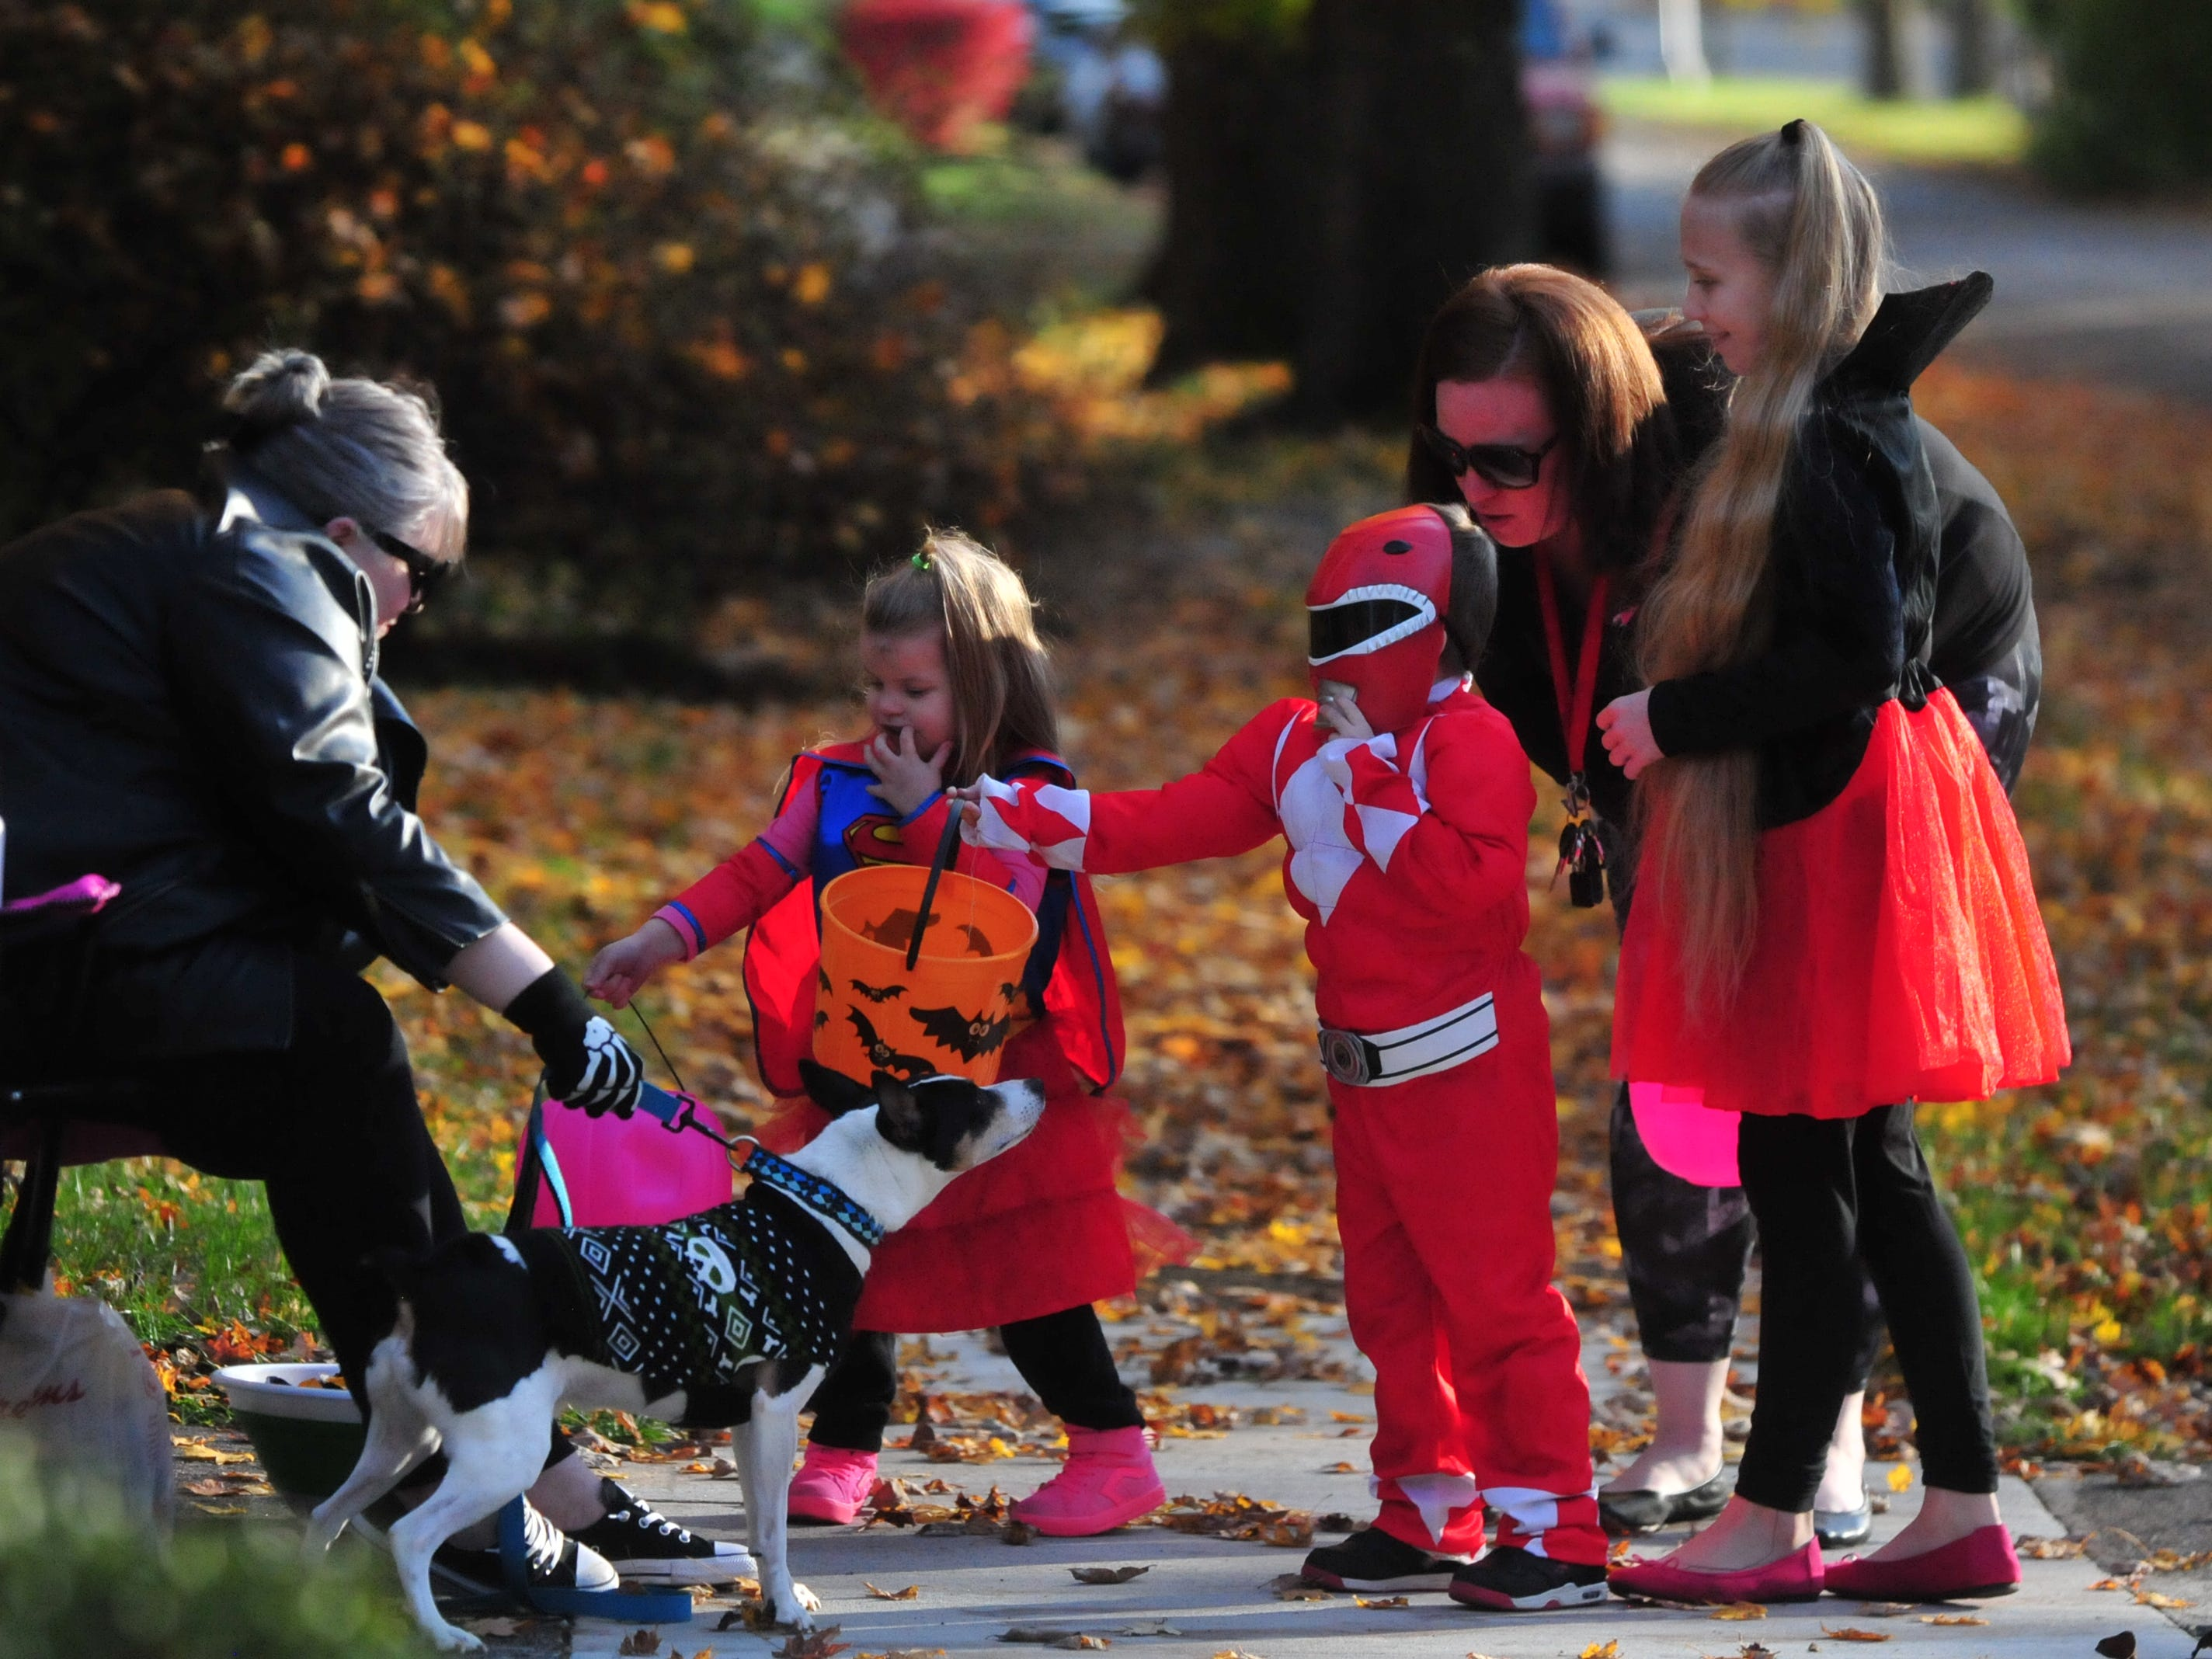 Julie Alexander and Cody pass out candy to trick-or-treaters Alayna McDaniel, 3; Talyn McDaniel, 4; and Taryn McDaniel, 10, who went trick-or-treating Saturday with Ashley McDaniel.